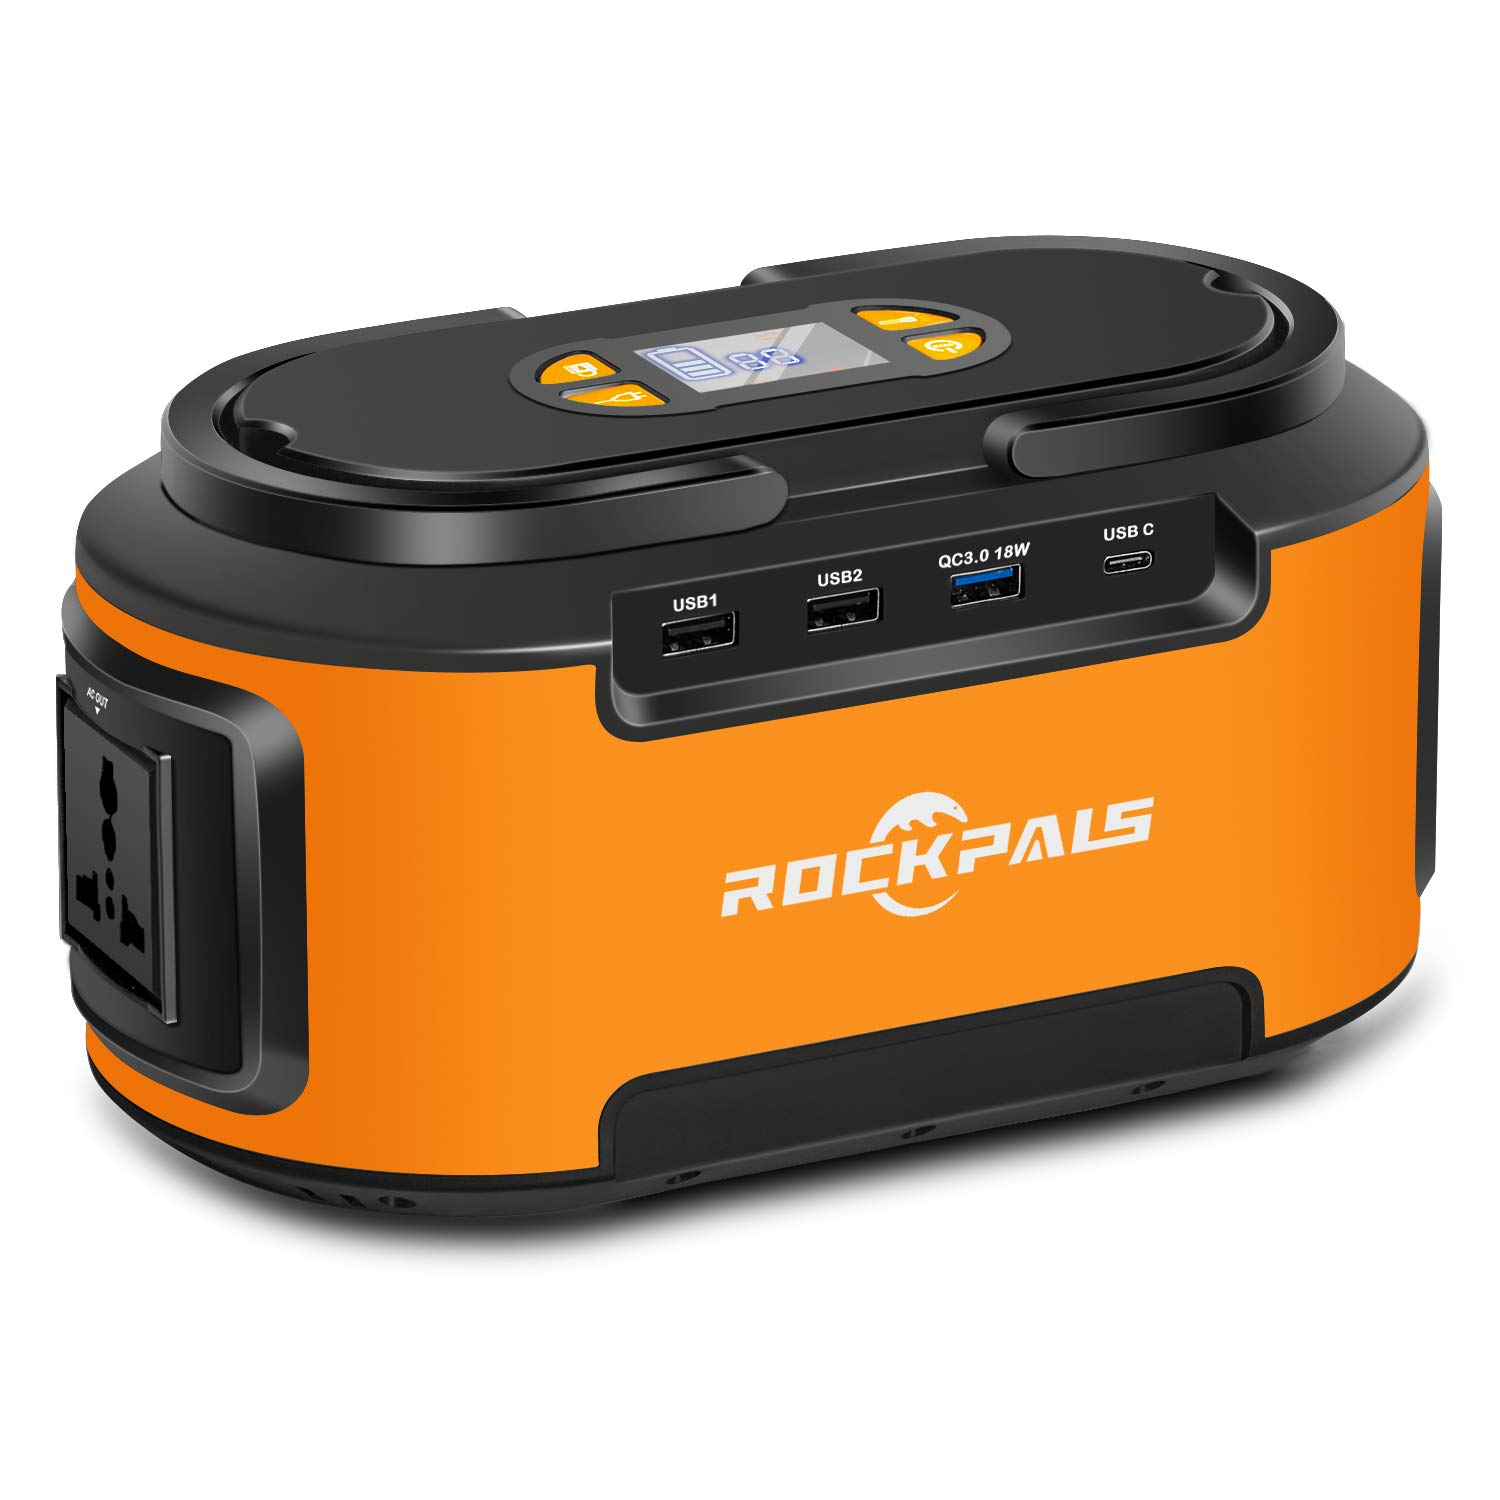 Rockpals Portable Power Station, 222Wh Gas Free Generator, 60000 Lithium Power Supply with 110V/200W AC Outlet, QC3.0 USB,12V DC Ports, Solar Generator for CPAP Outdoors Camping Travel Fishing Hunt